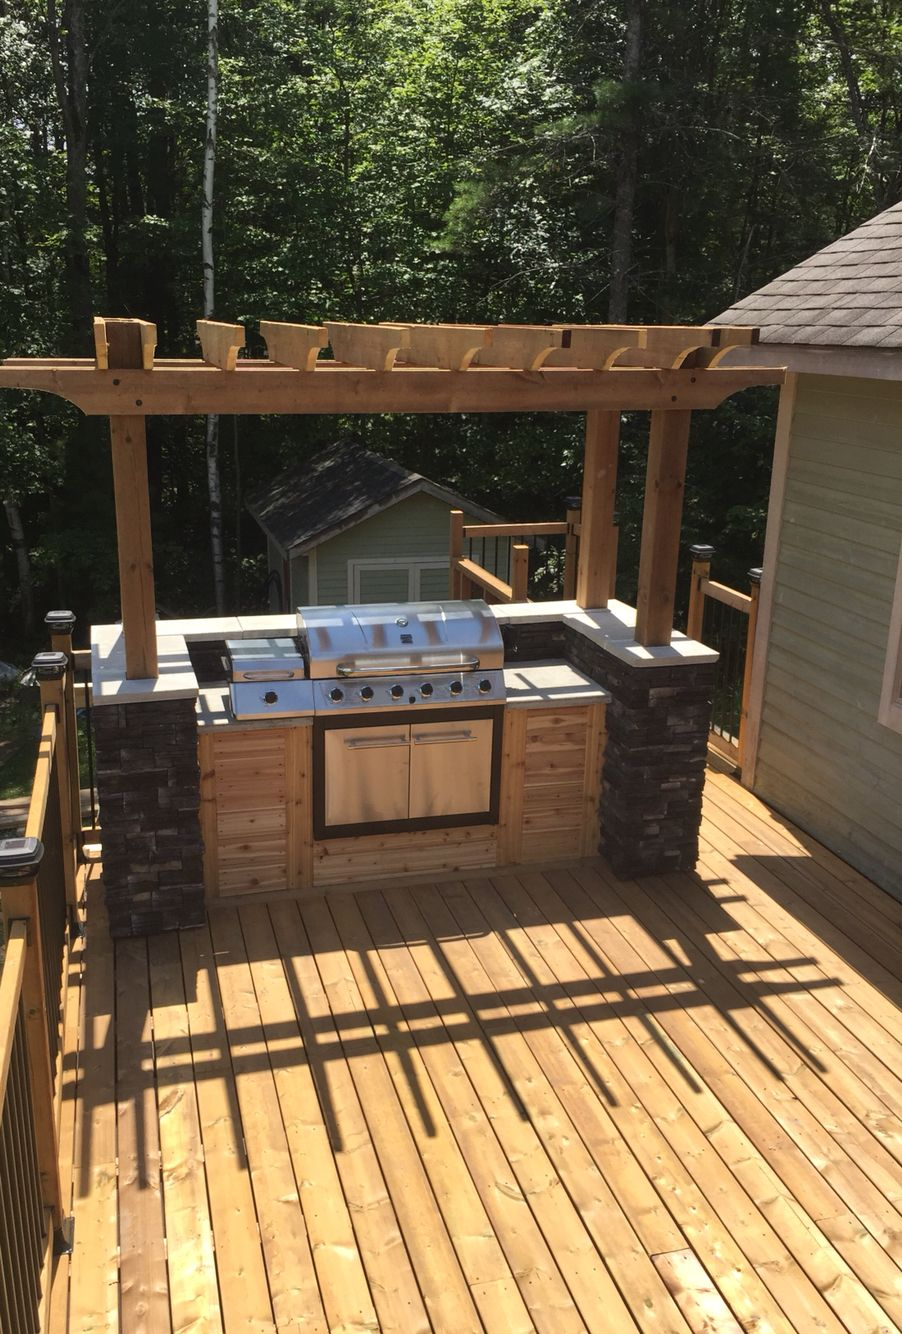 Outdoor bbq island built on my parents deck in muskoka for Bbq designs and plans